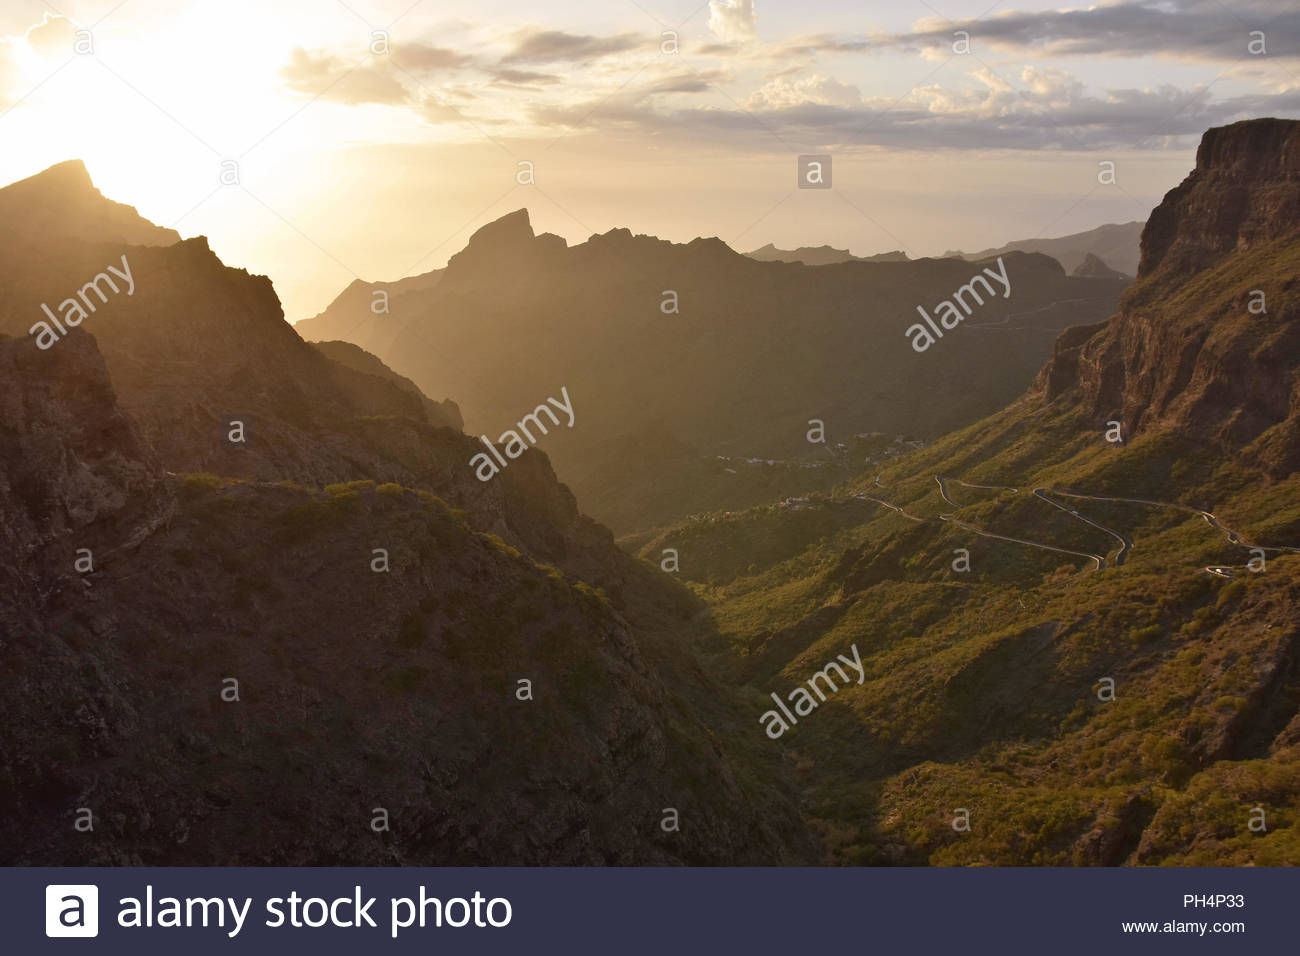 Masca Valley in the northwest of Tenerife Canary Islands Spain. Sun setting behind volcanic peaks of Teno Massif. Scenic view from Mirador de Cherfe. Stock Photo